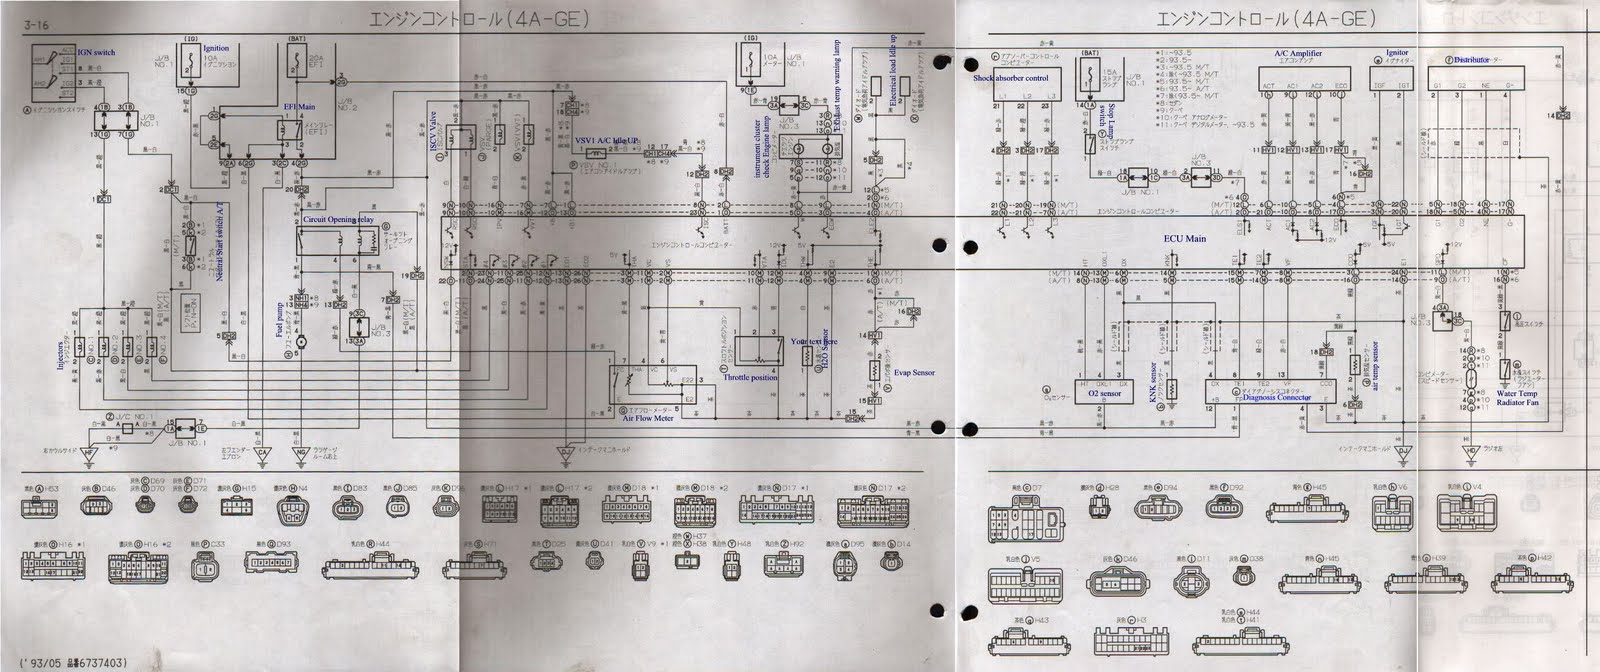 proton saga wiring engine diagram proton image ae101 4age wiring diagram 4age 20v silvertop car enthusiast on proton saga wiring engine diagram